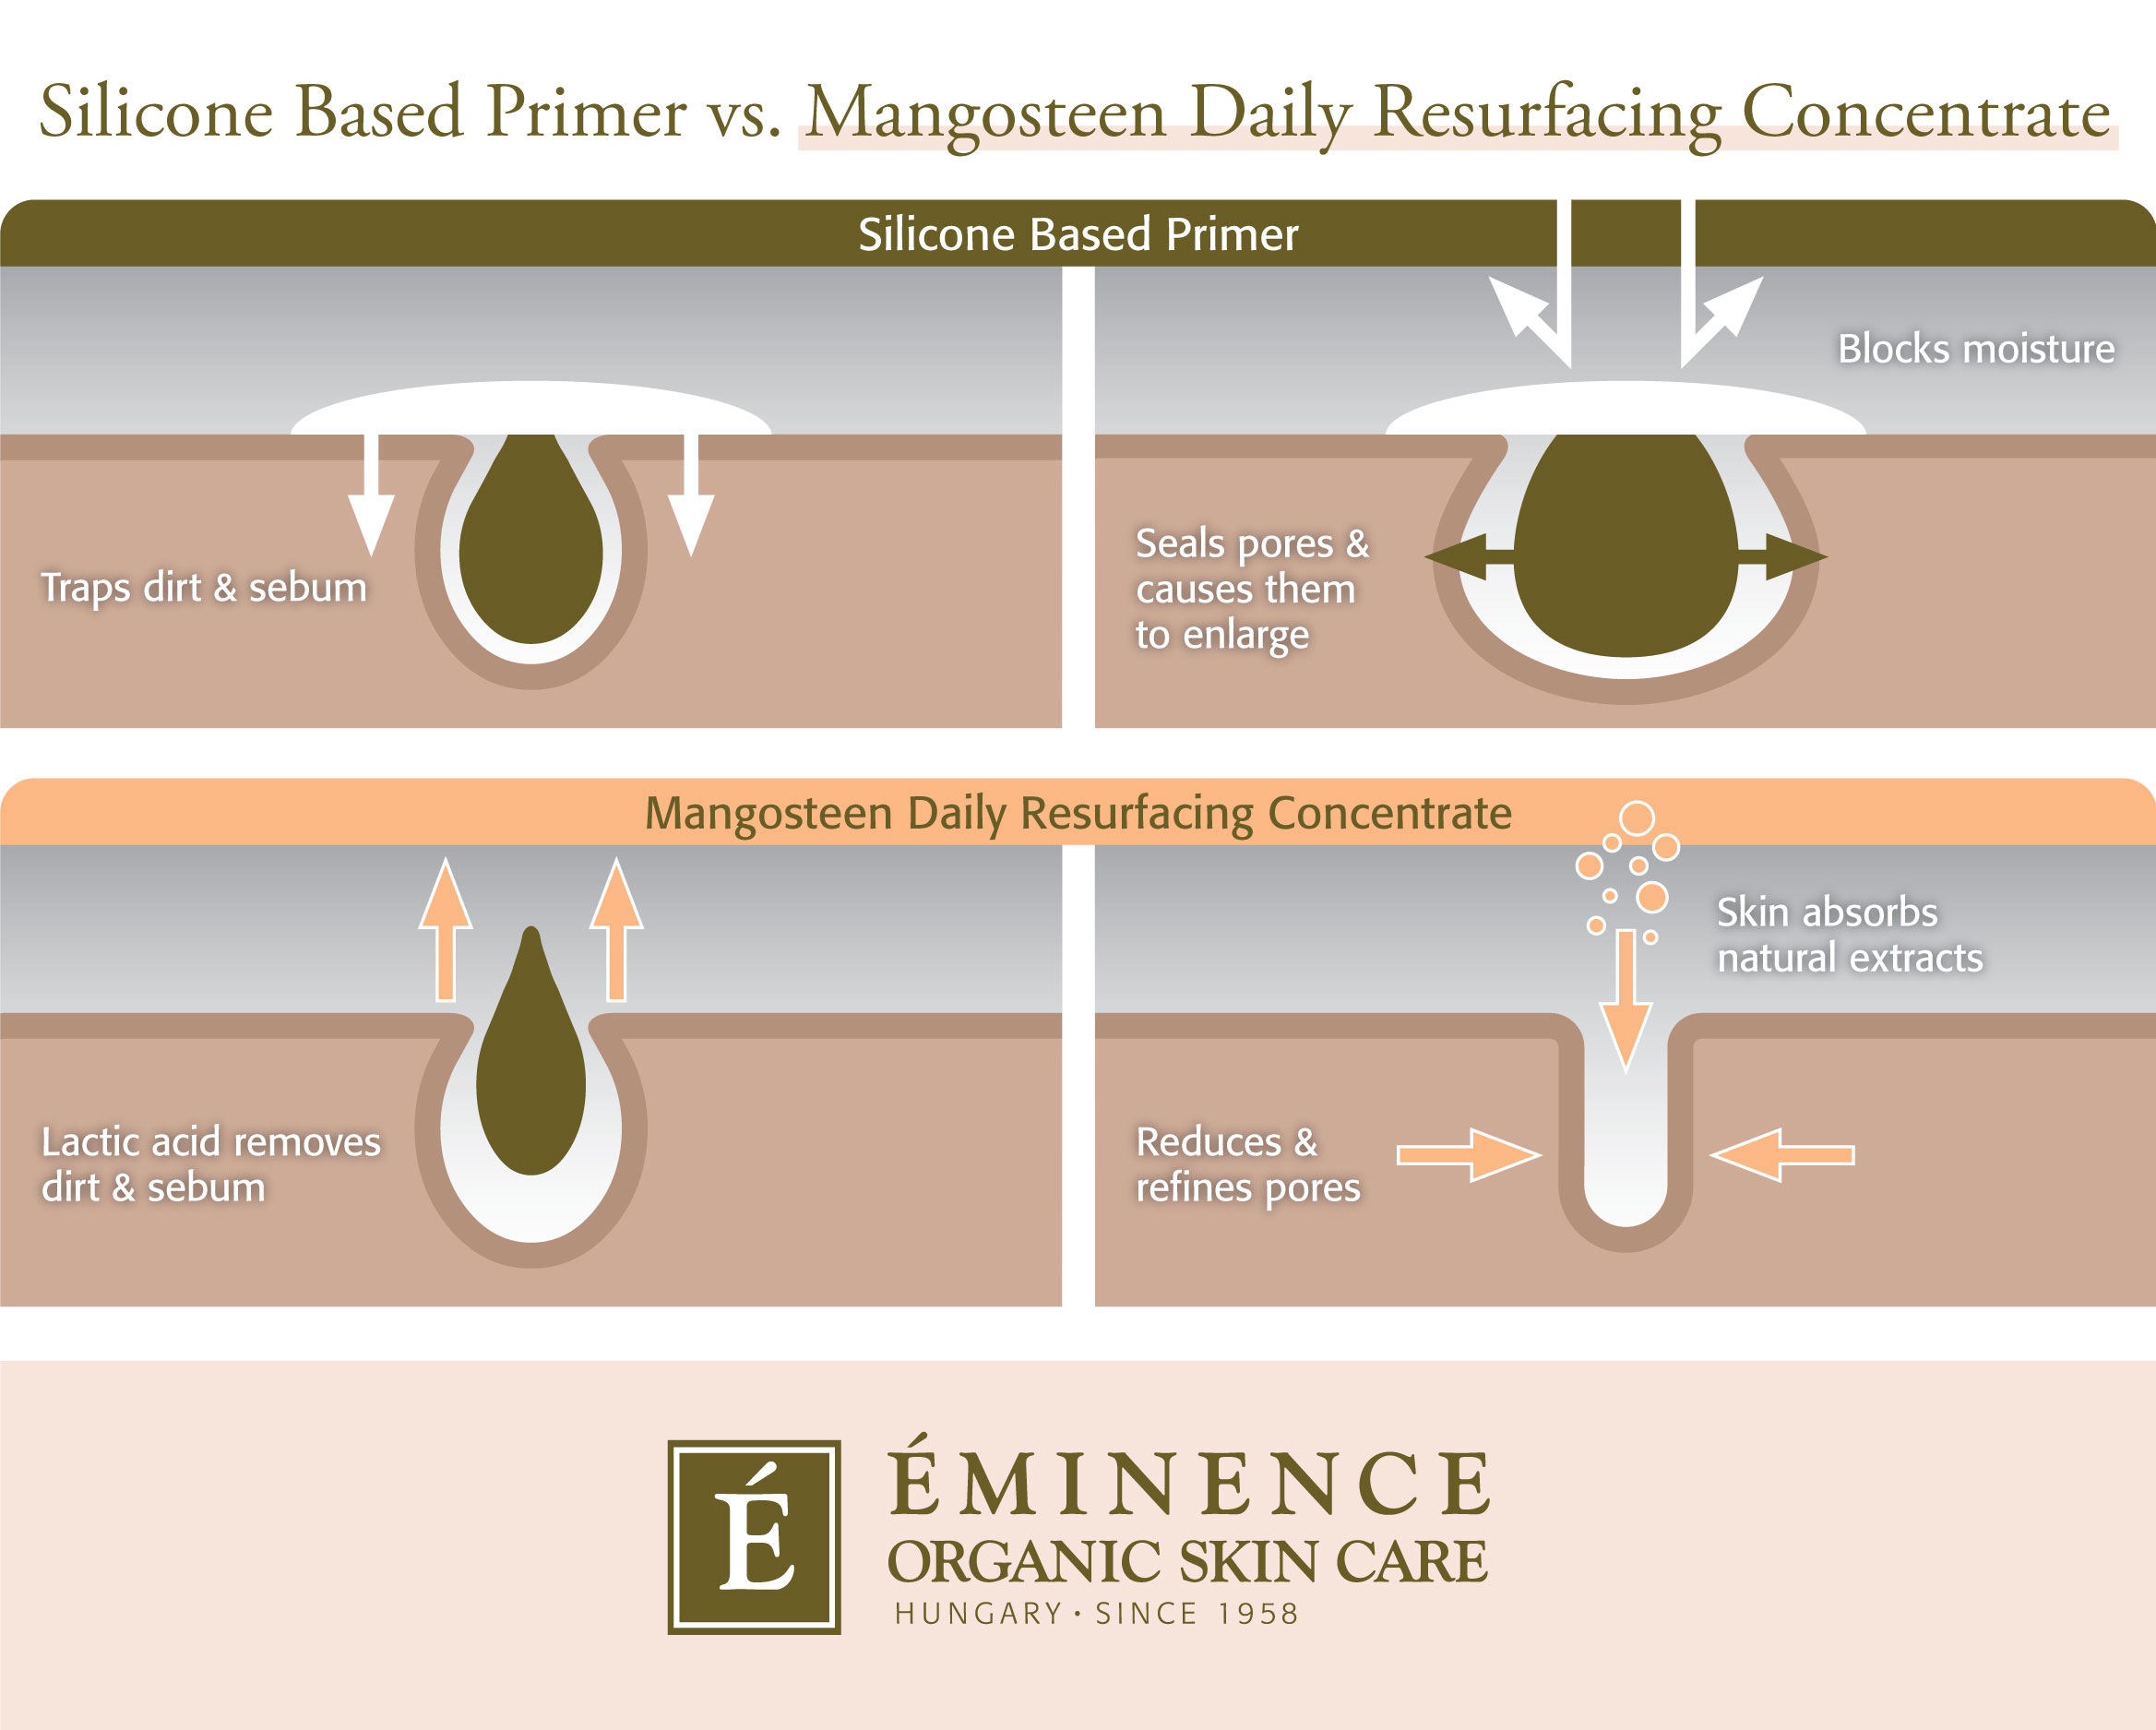 Infographic comparing silicone based primers with Eminence Organics Mangosteen Daily Resurfacing Concentrate